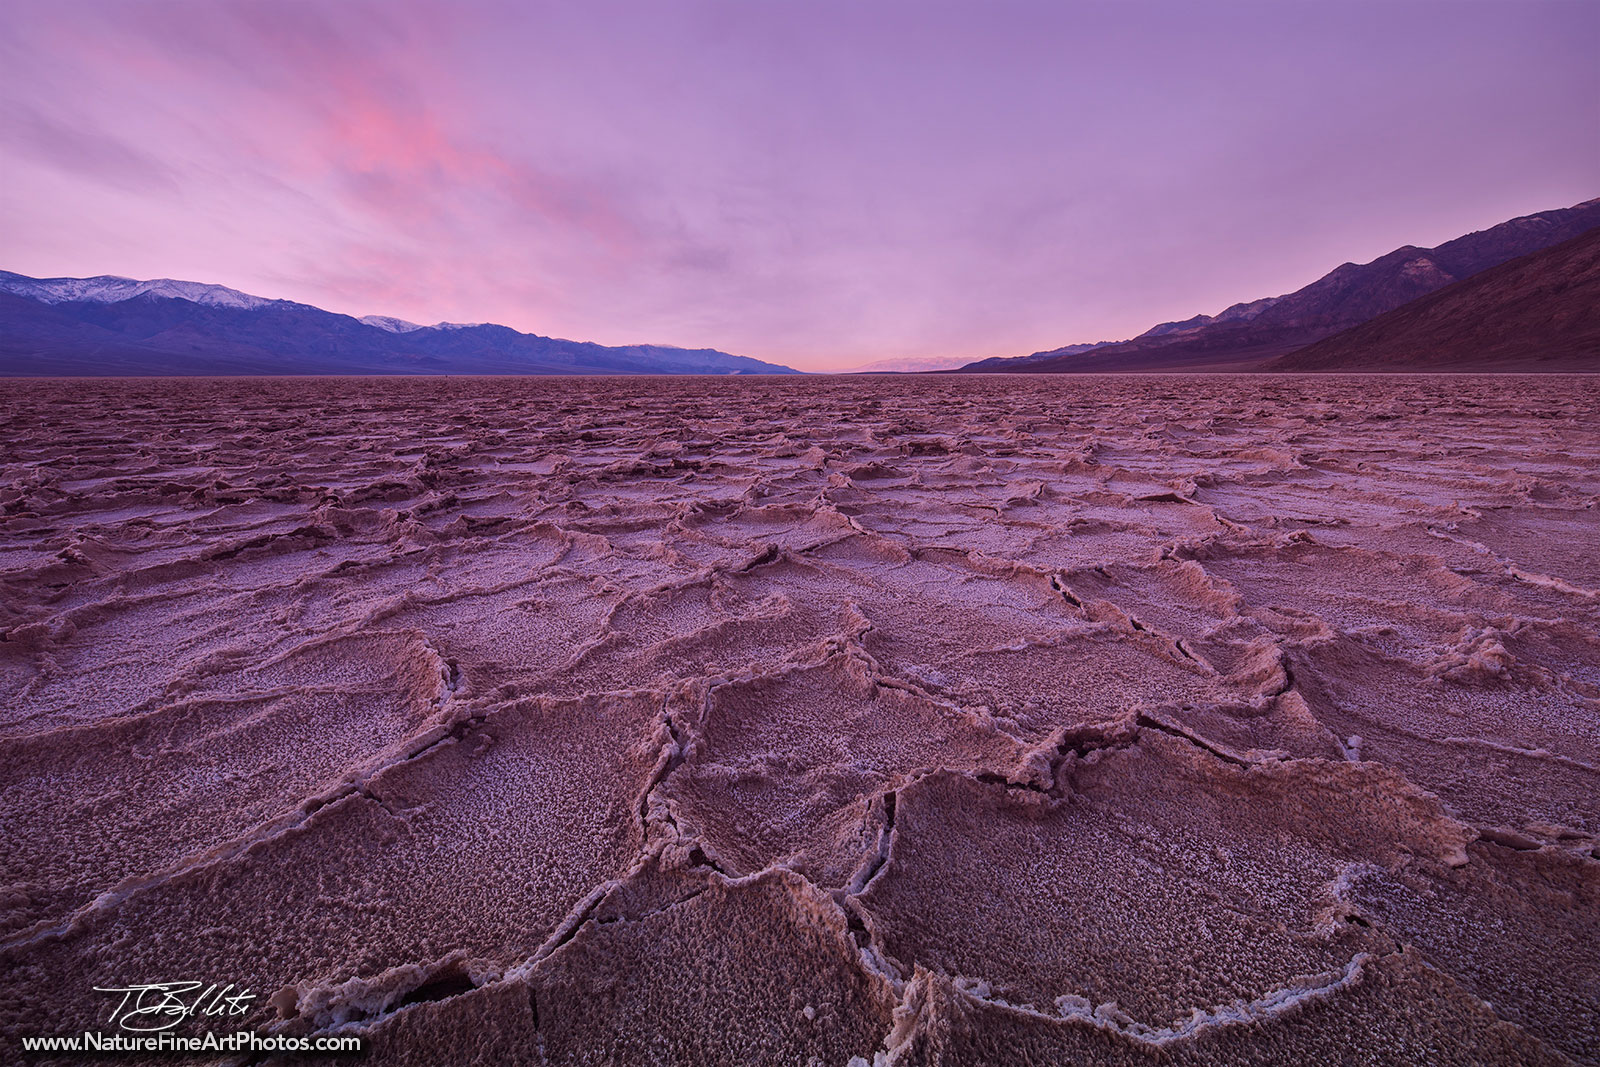 Fine Art Photo of Badwater Flats in Death Valley